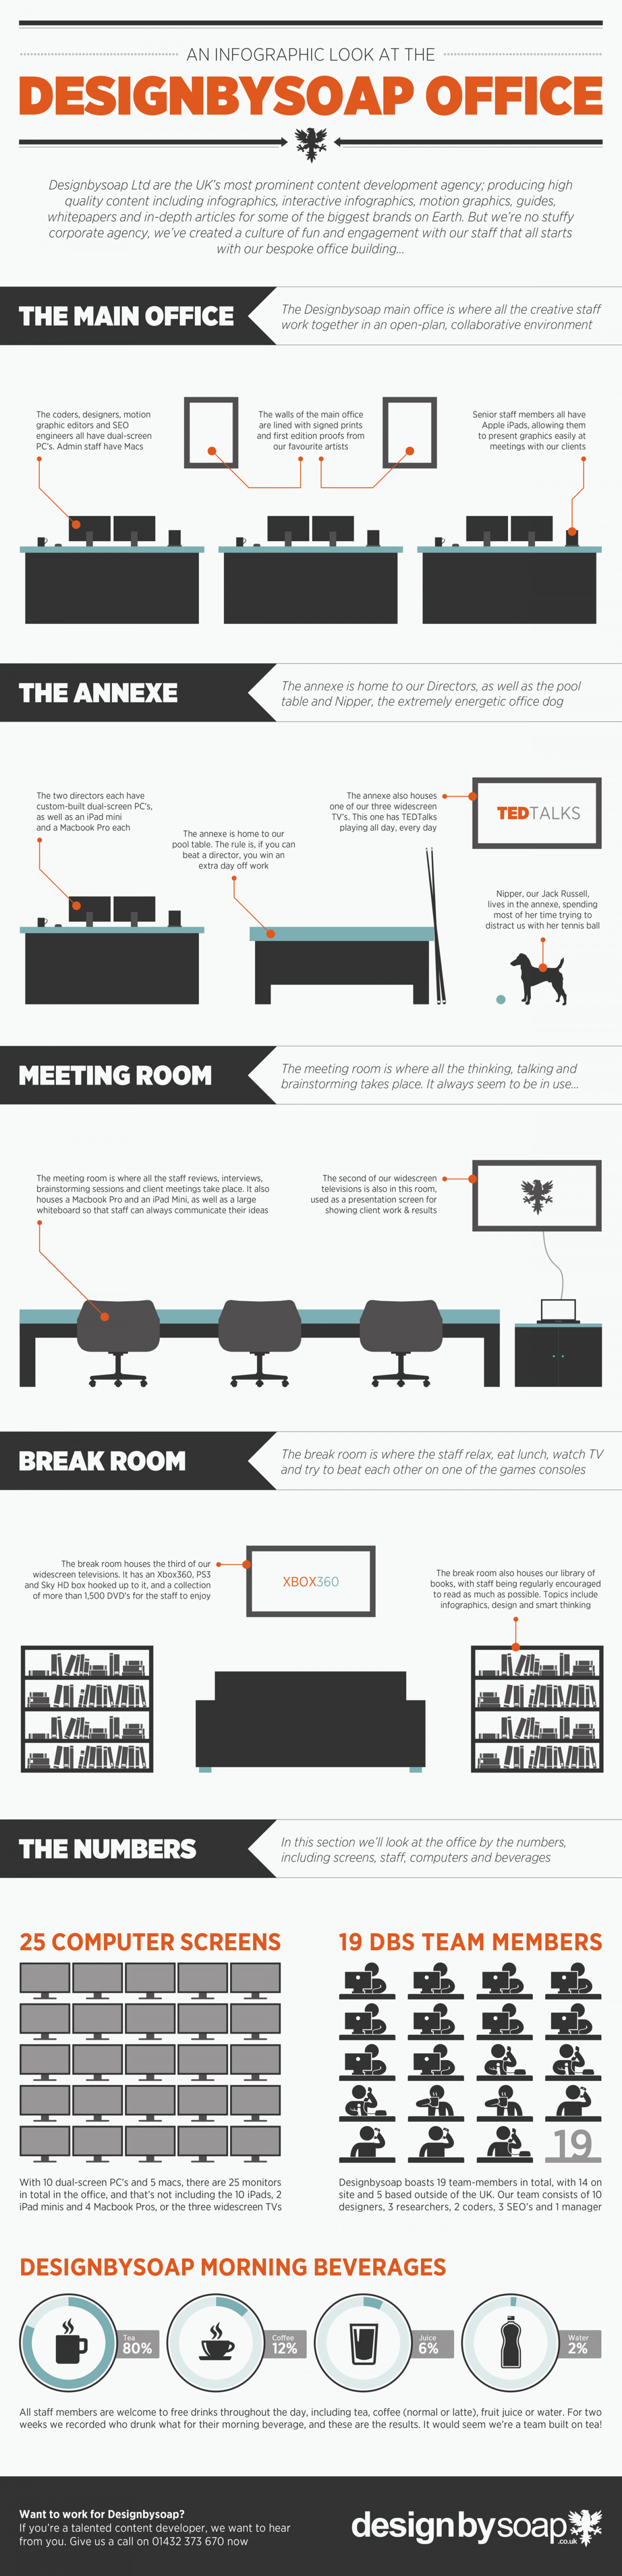 An Infographic Look at the Designbysoap Office Infographic